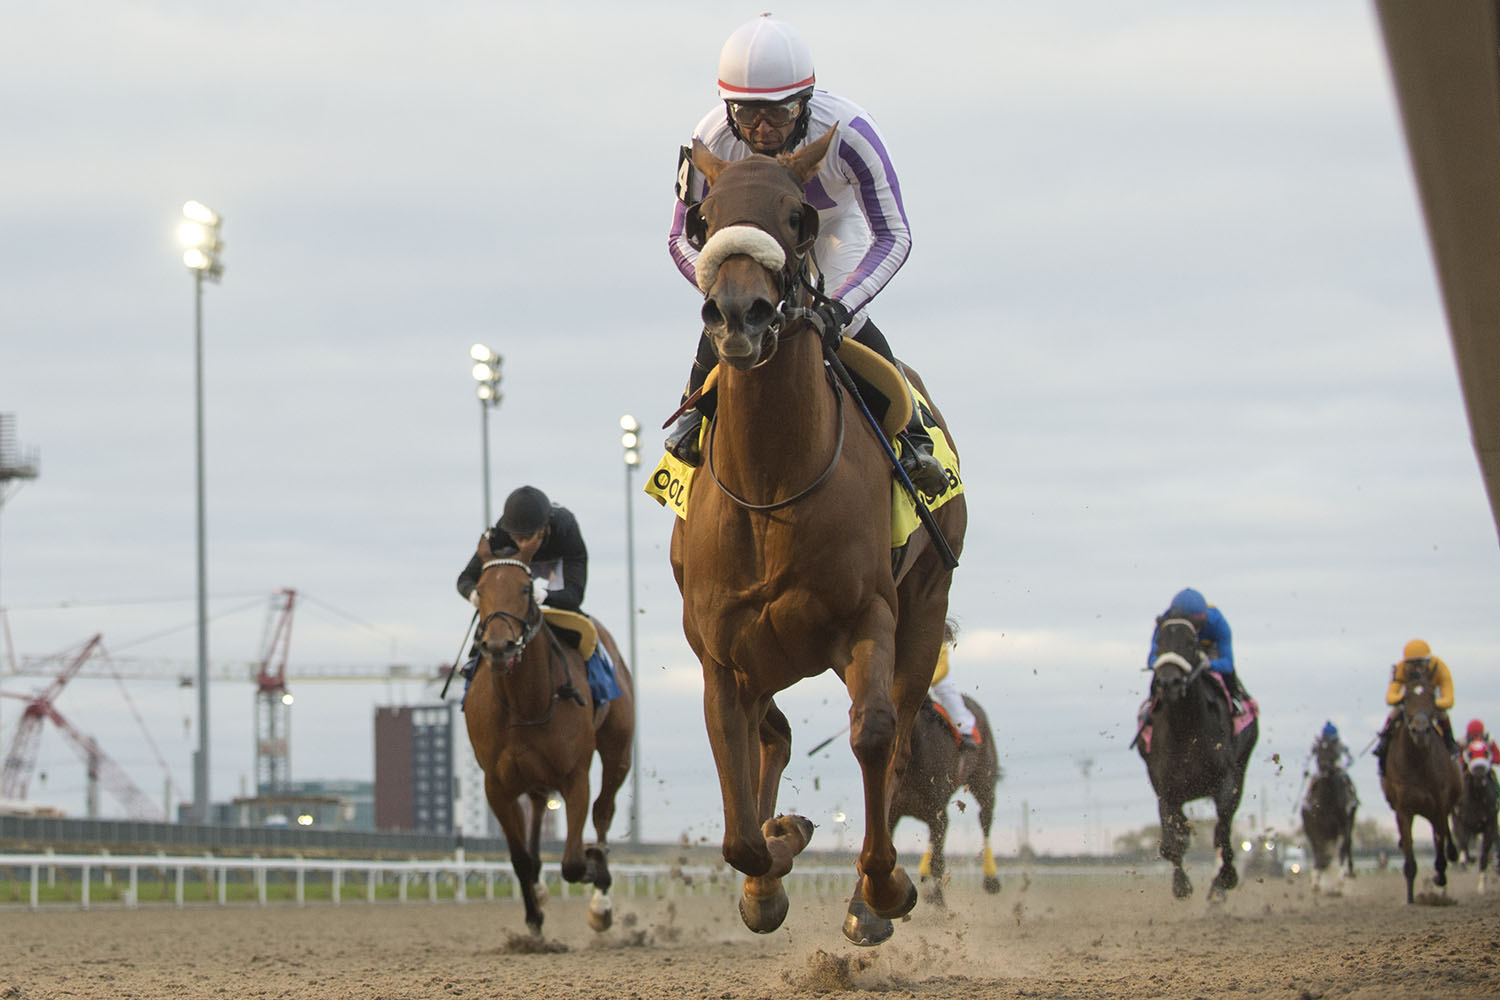 Dreaming of Drew and jockey Patrick Husbands winning the 75th running of the $250,000 Princess Elizabeth Stakes on Saturday, Oct. 31 at Woodbine Racetrack. (Michael Burns Photo)